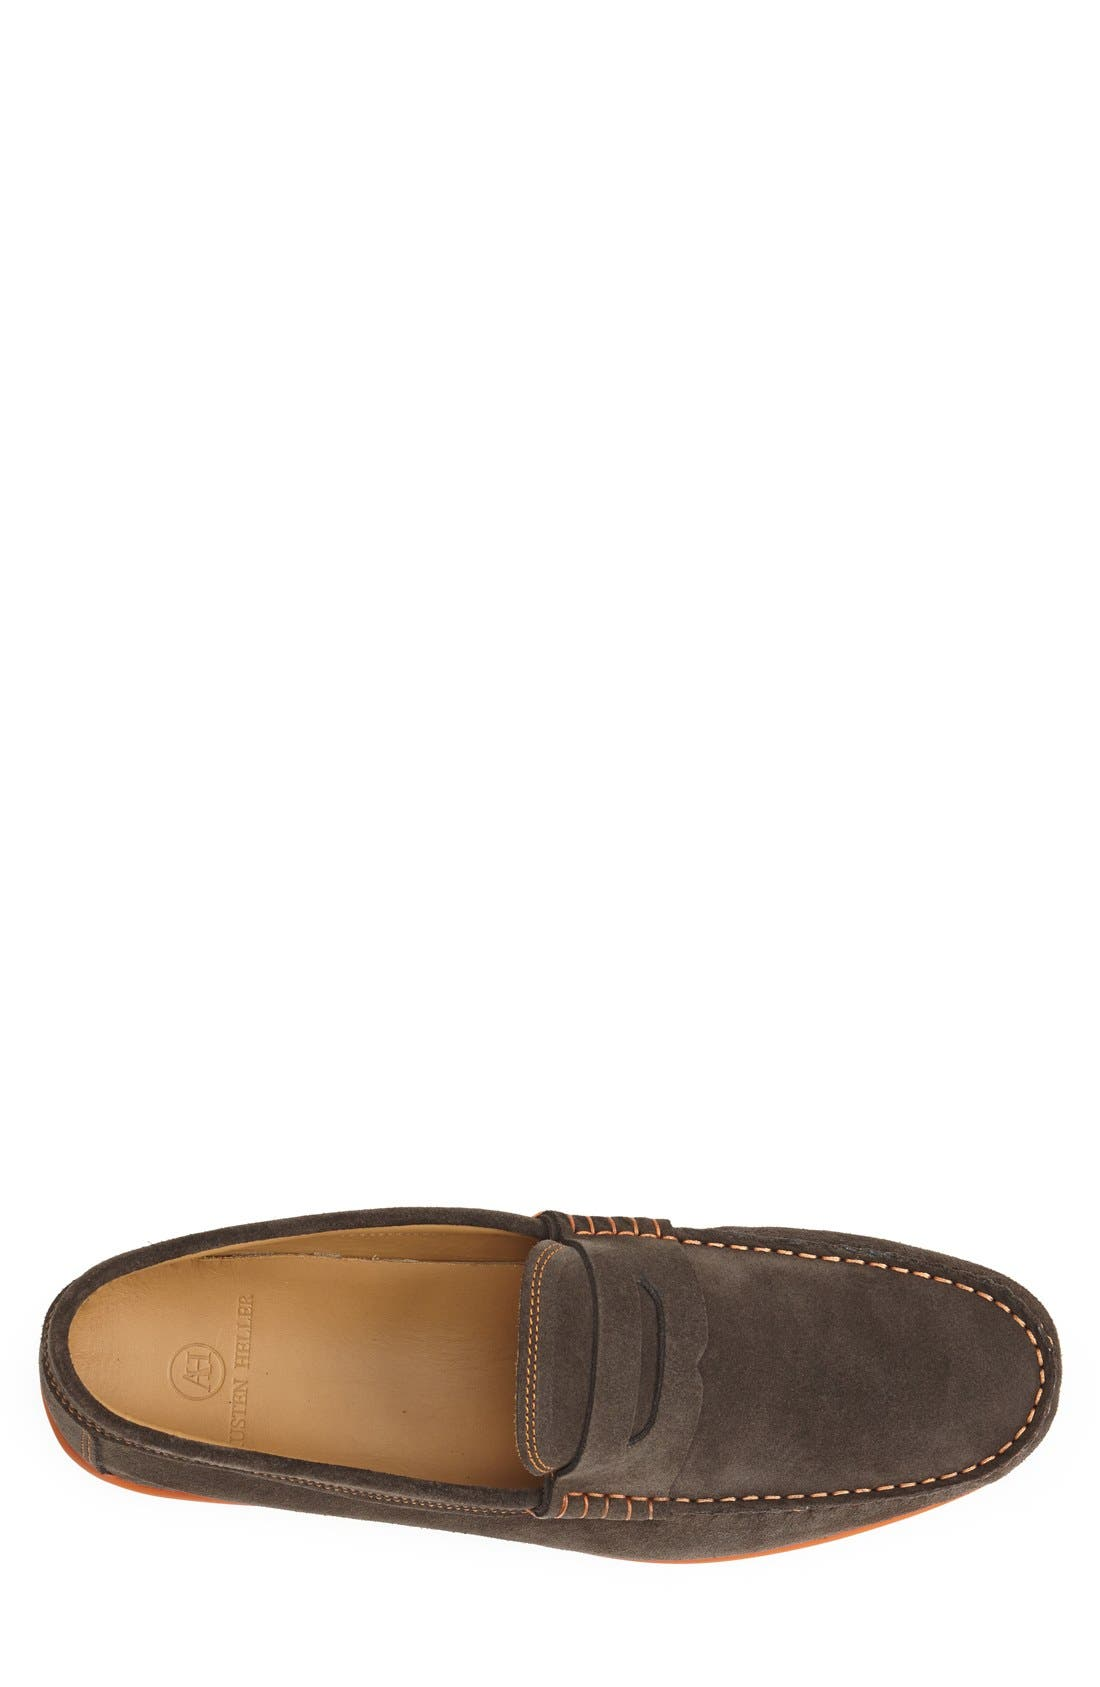 'North Sides' Penny Loafer,                             Alternate thumbnail 3, color,                             Brown Suede/ Orange